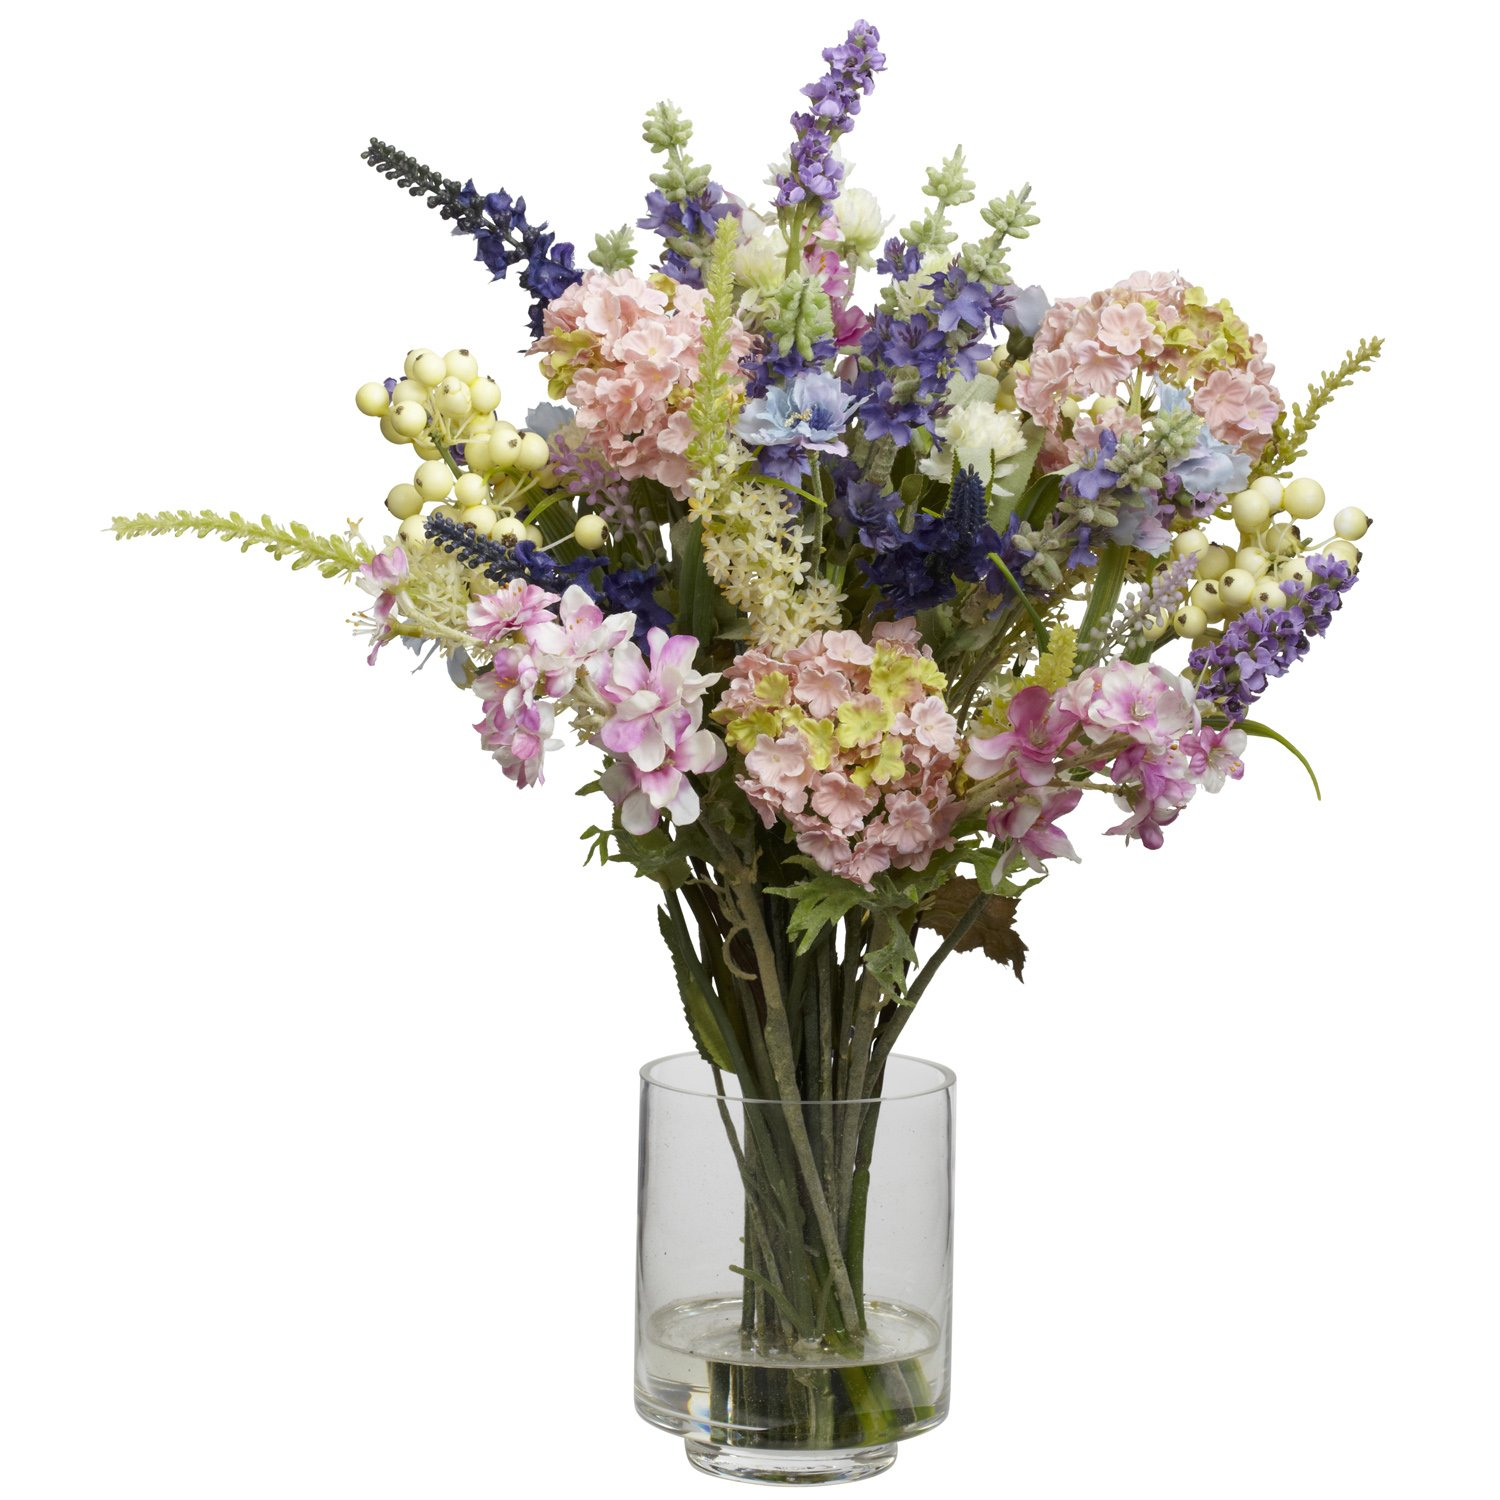 Amazon.com: Nearly Natural 4760 Lavender and Hydrangea Silk Flower ...